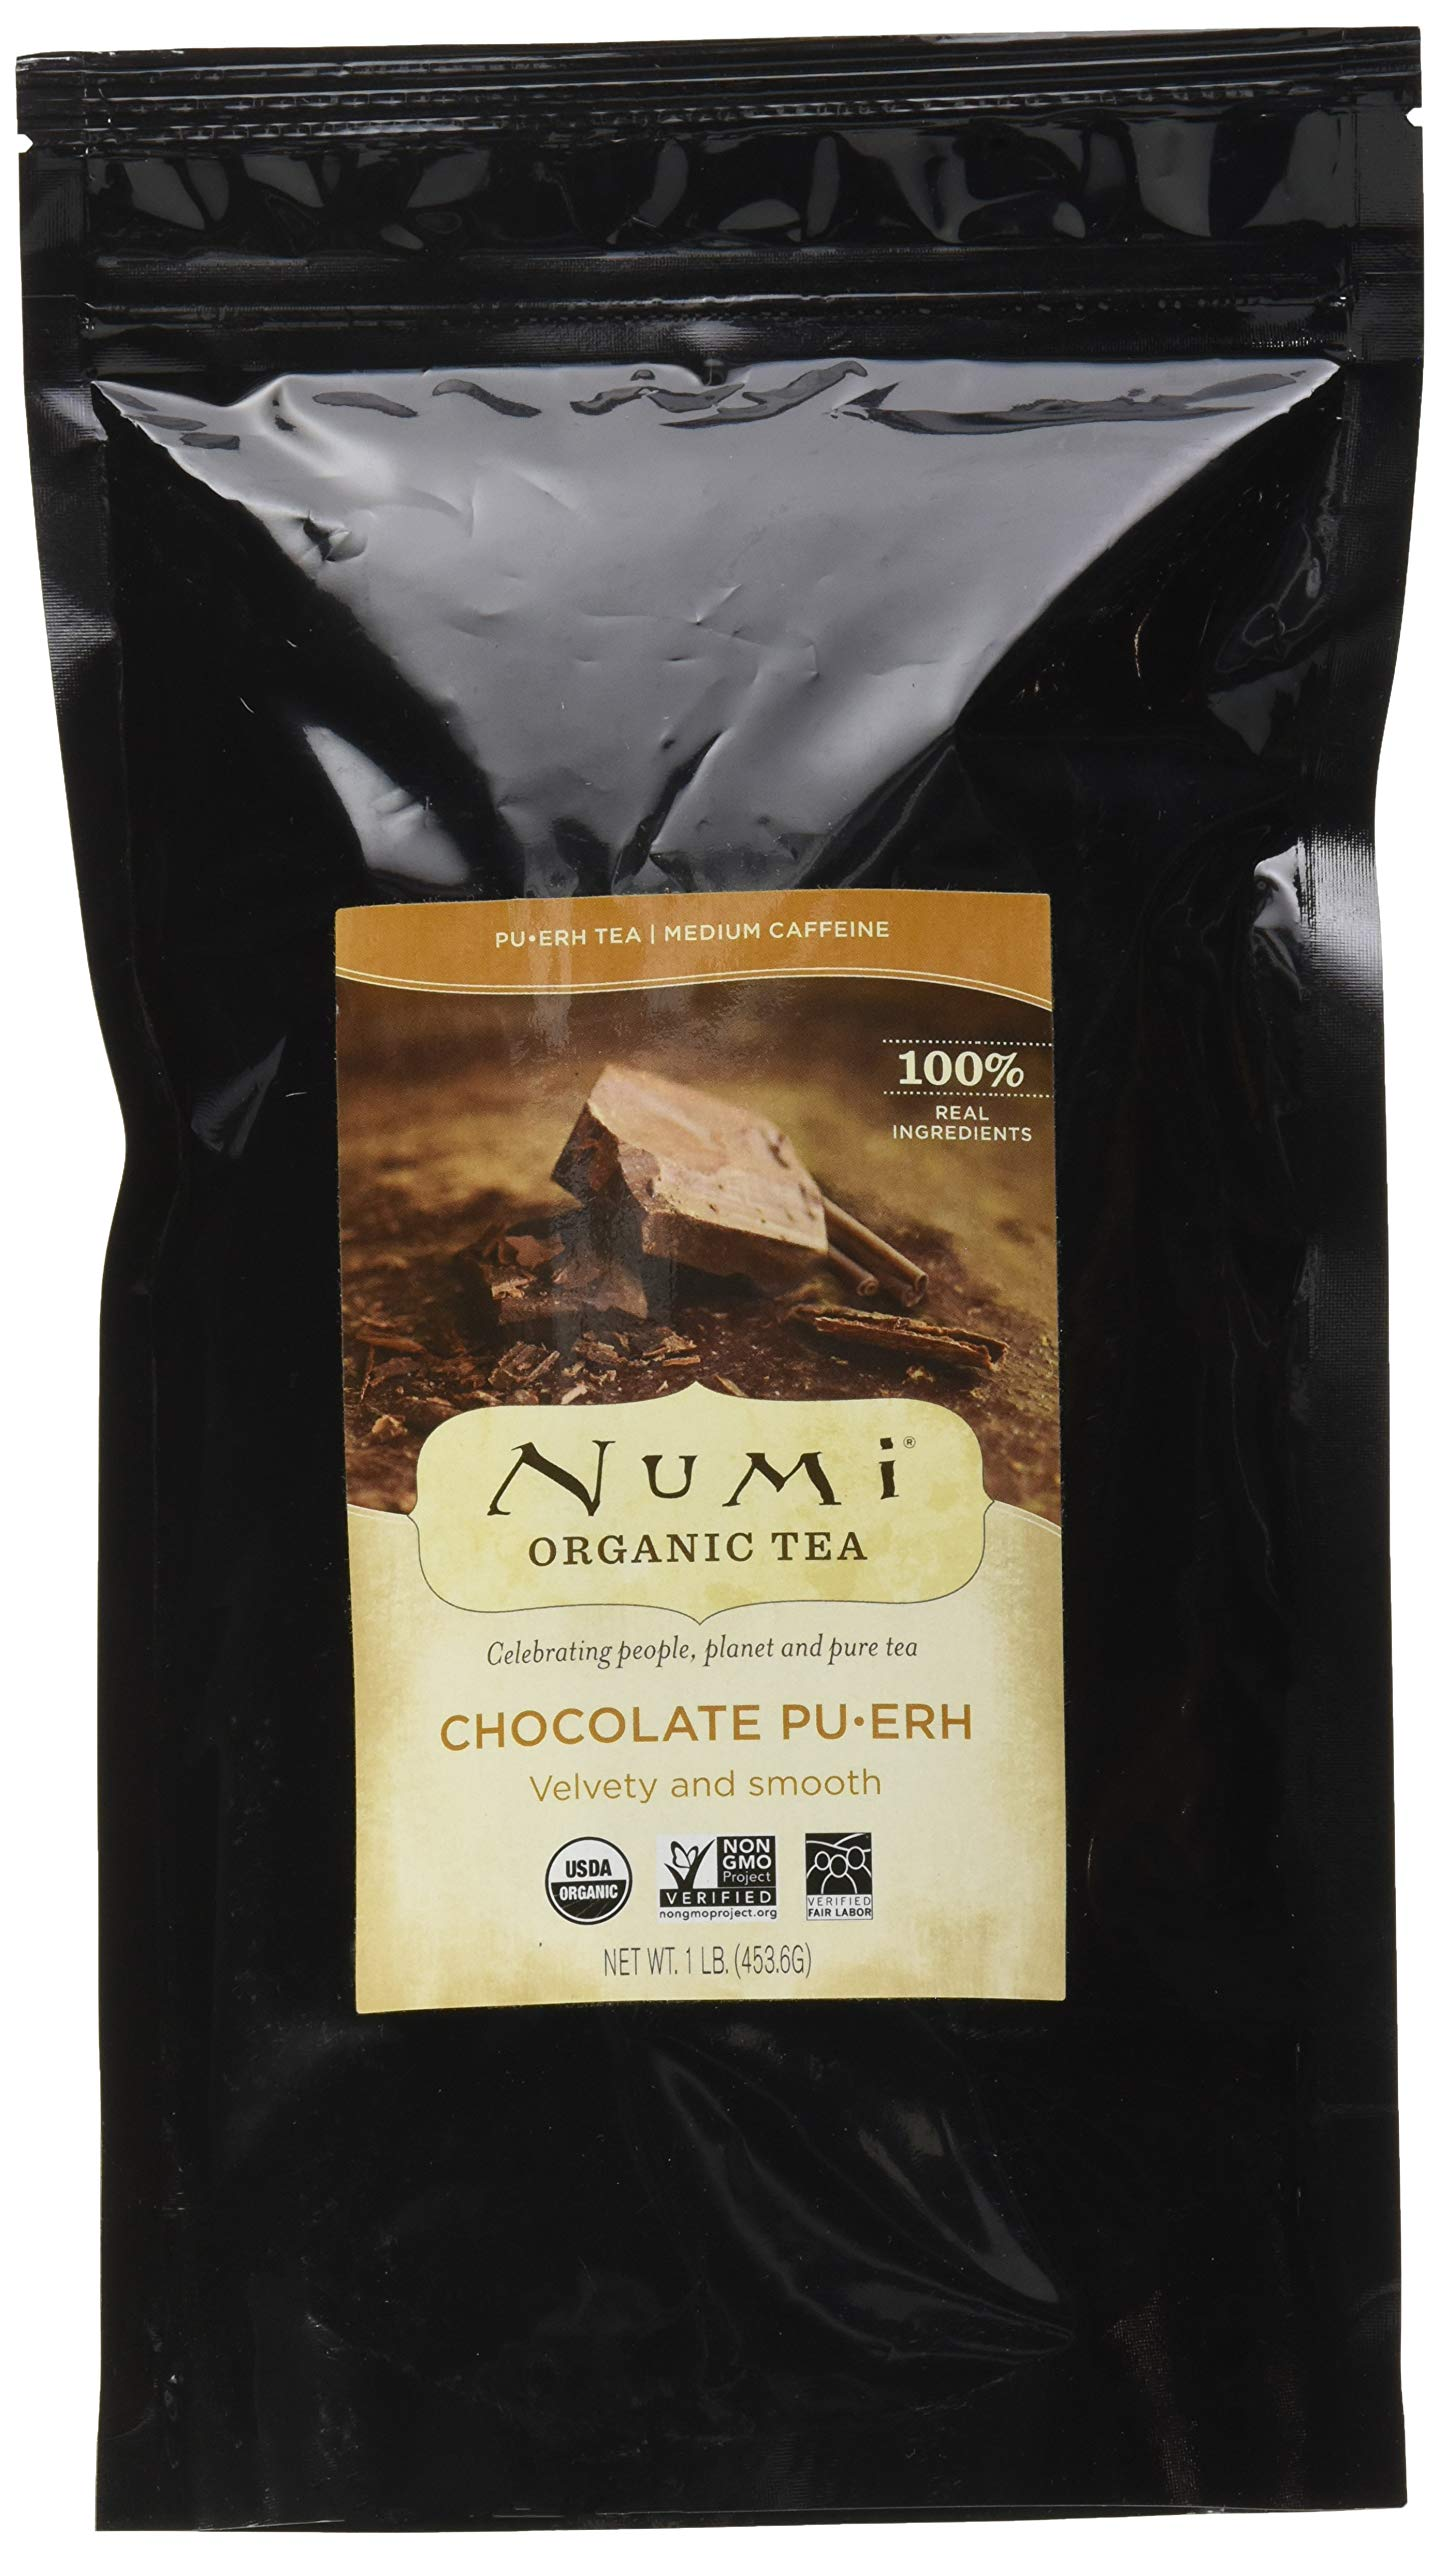 Numi Organic Tea Chocolate Pu-erh, 16 Ounce Pouch, Loose Leaf Black Tea (Packaging May Vary)